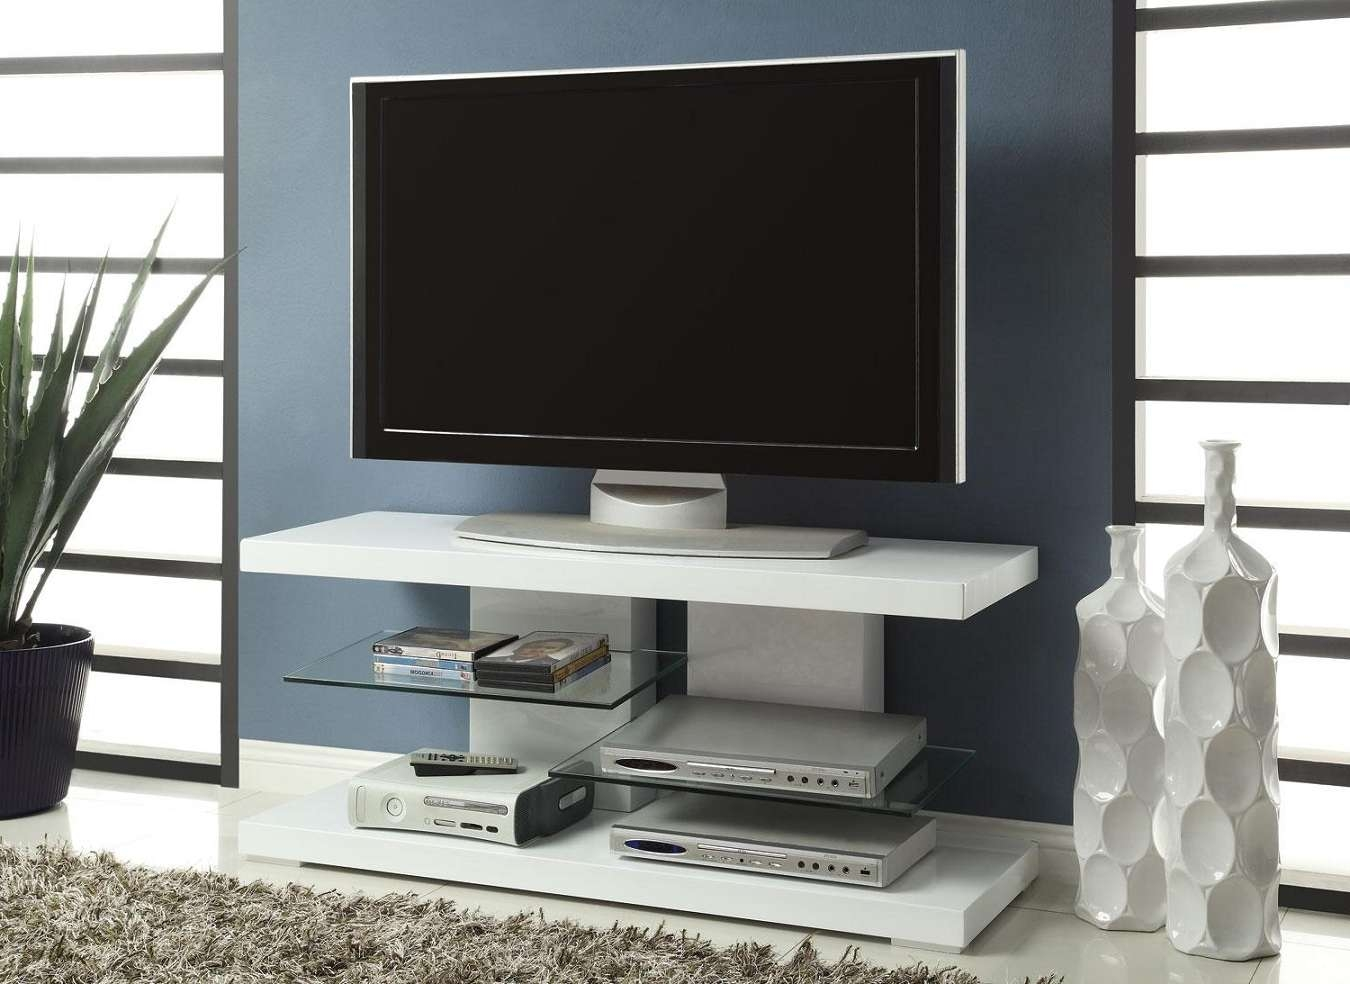 White Painted Plywood Flat Screen Tv Stand With Tempered Glass For Modern Tv Stands For Flat Screens (View 8 of 15)